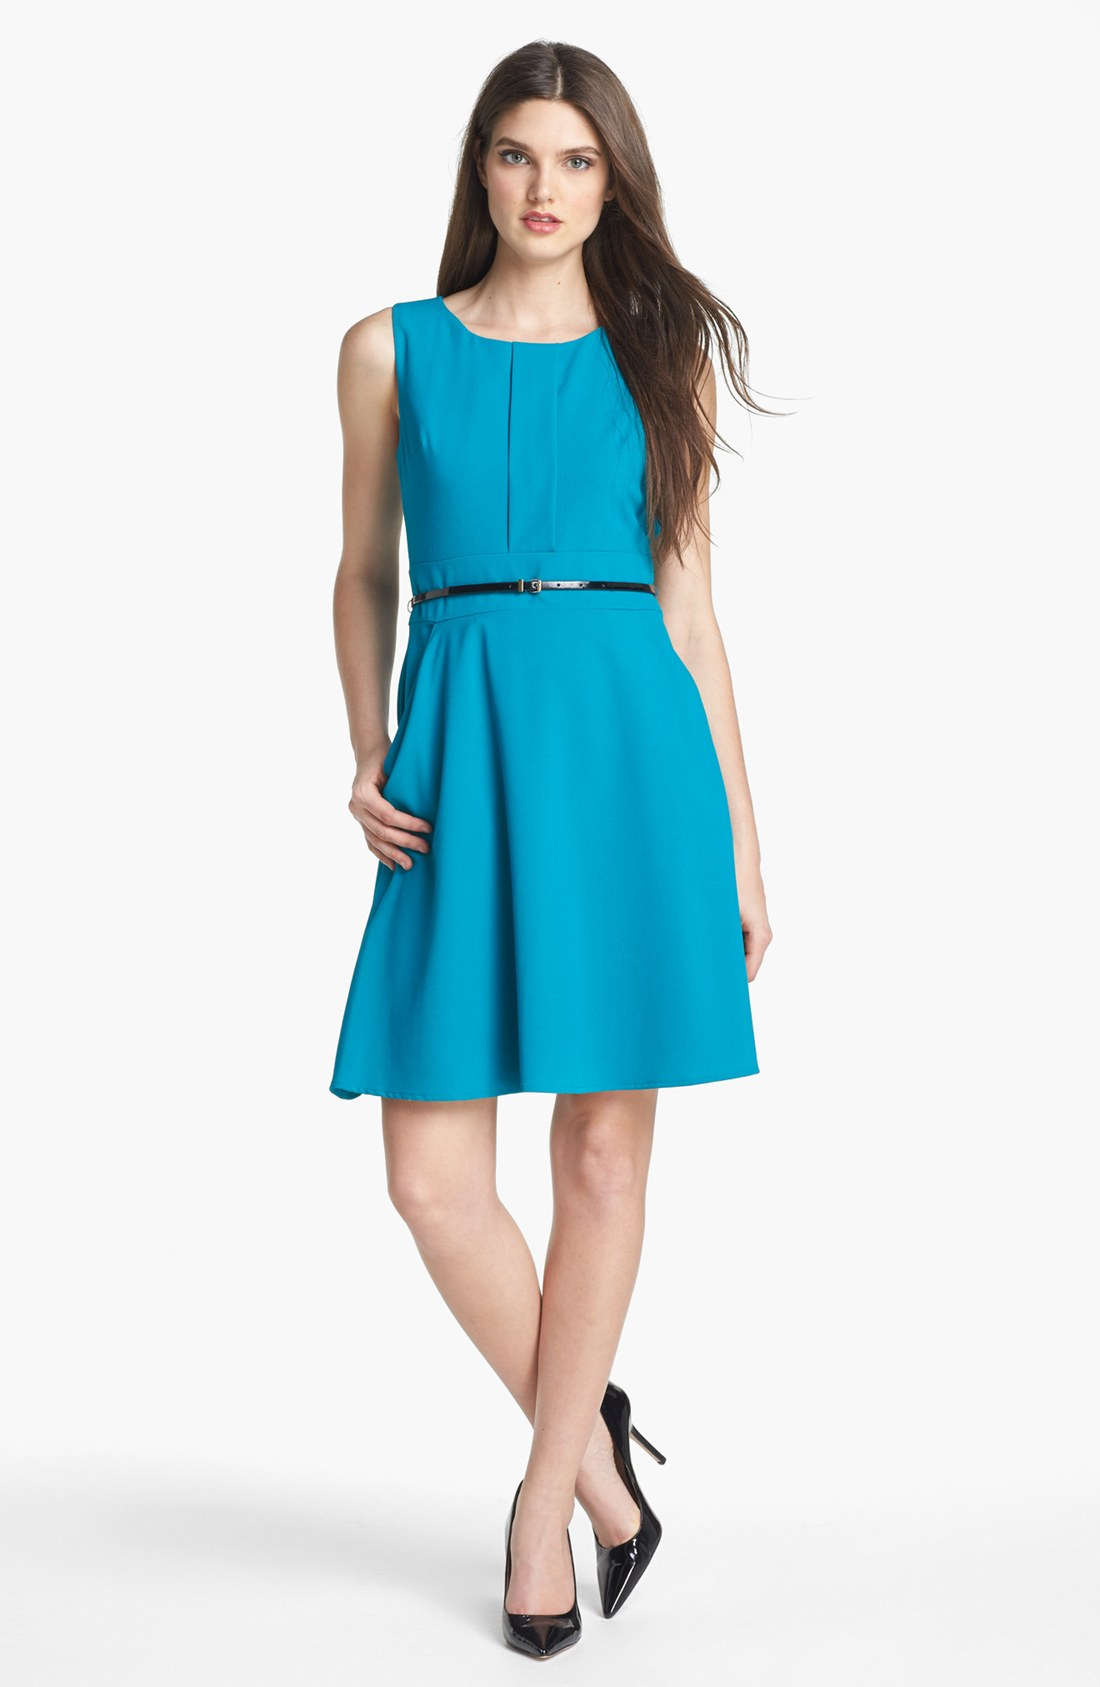 Calvin Klein Dresses For Women